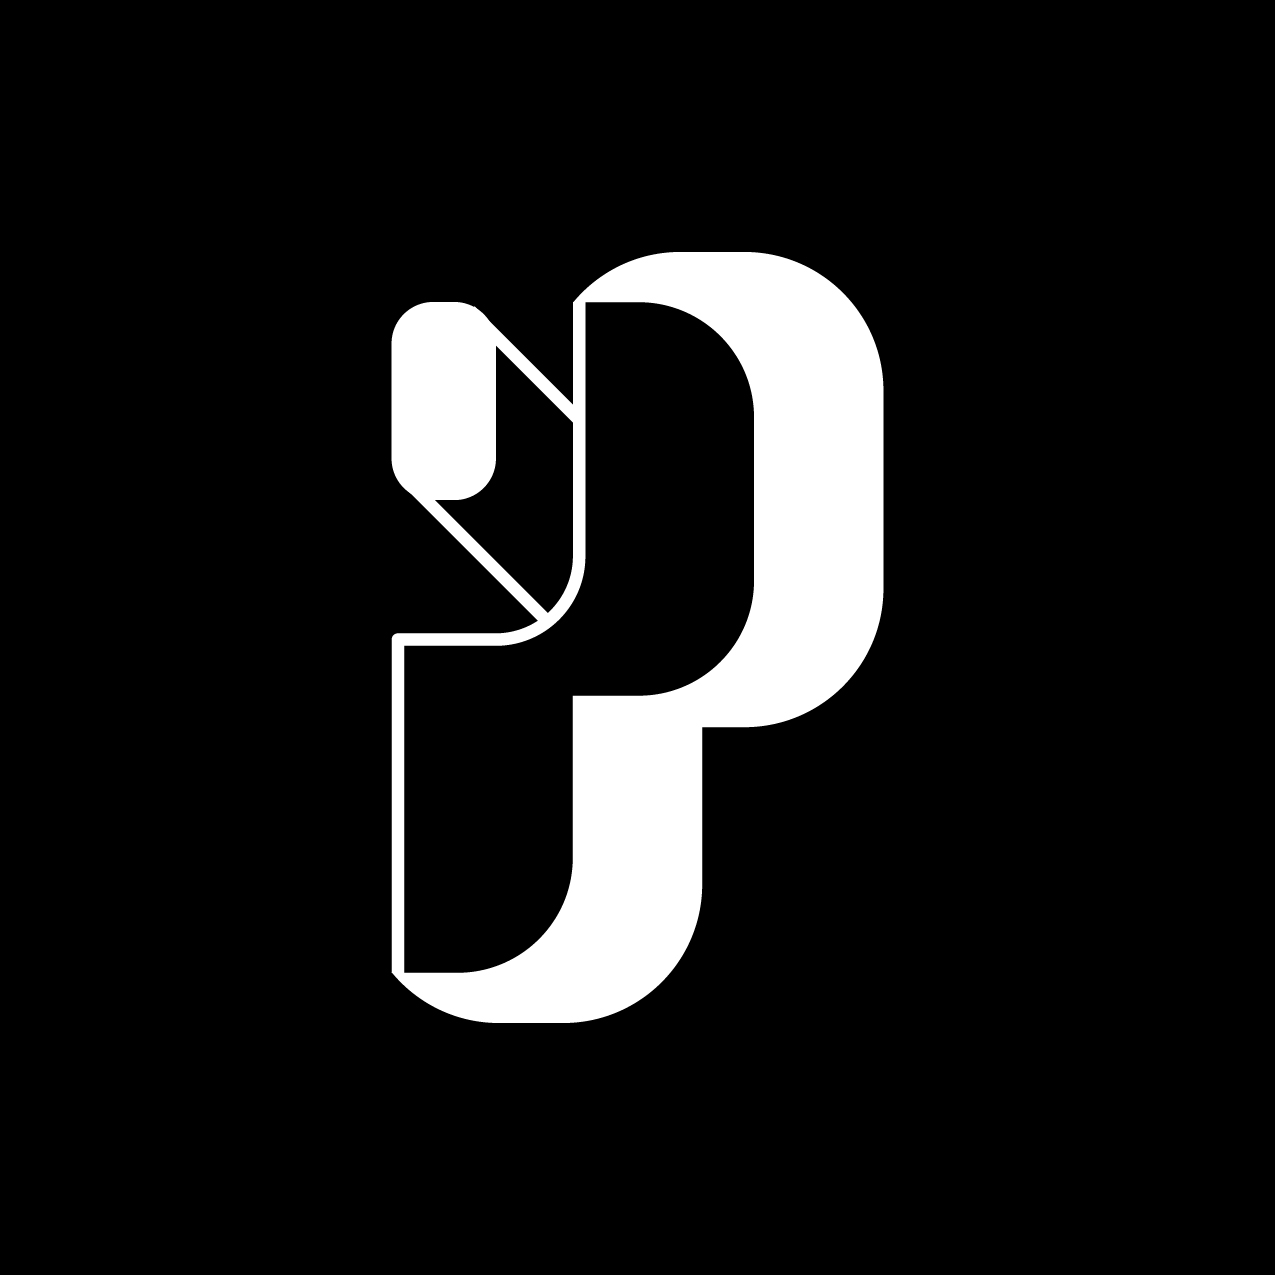 Letter P12 Design by Furia